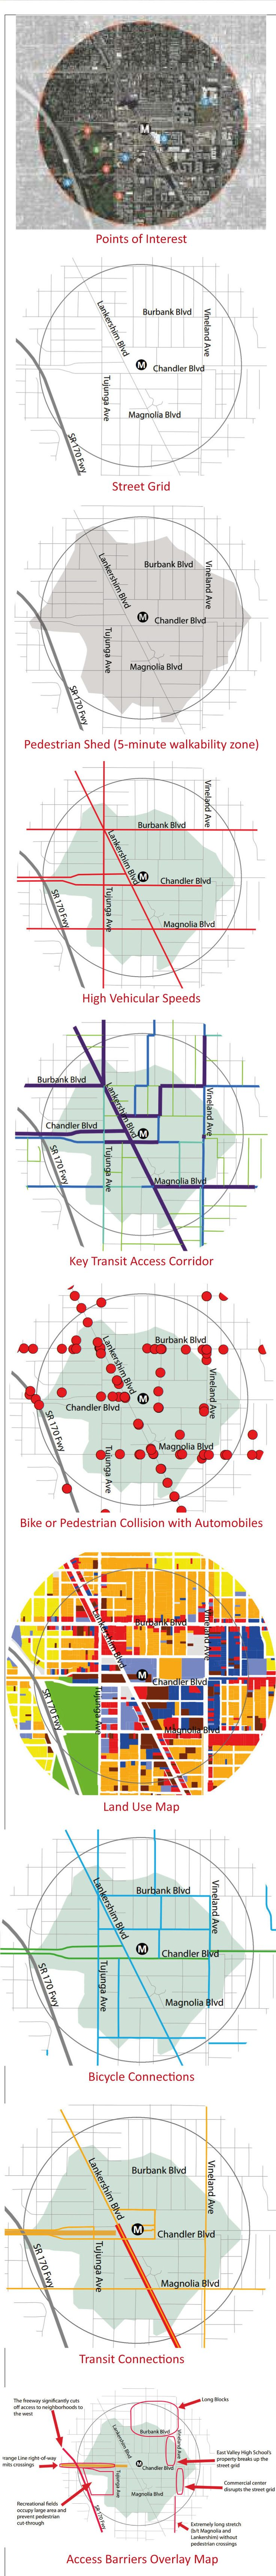 Here's a sequence ofmaps showing a stretch ofNorth Hollywood, adaptedfrompp. 20-21 of the exemplaryFirst Last plan Strategic Plan & Planning Guidelines published by LA Metro in March…